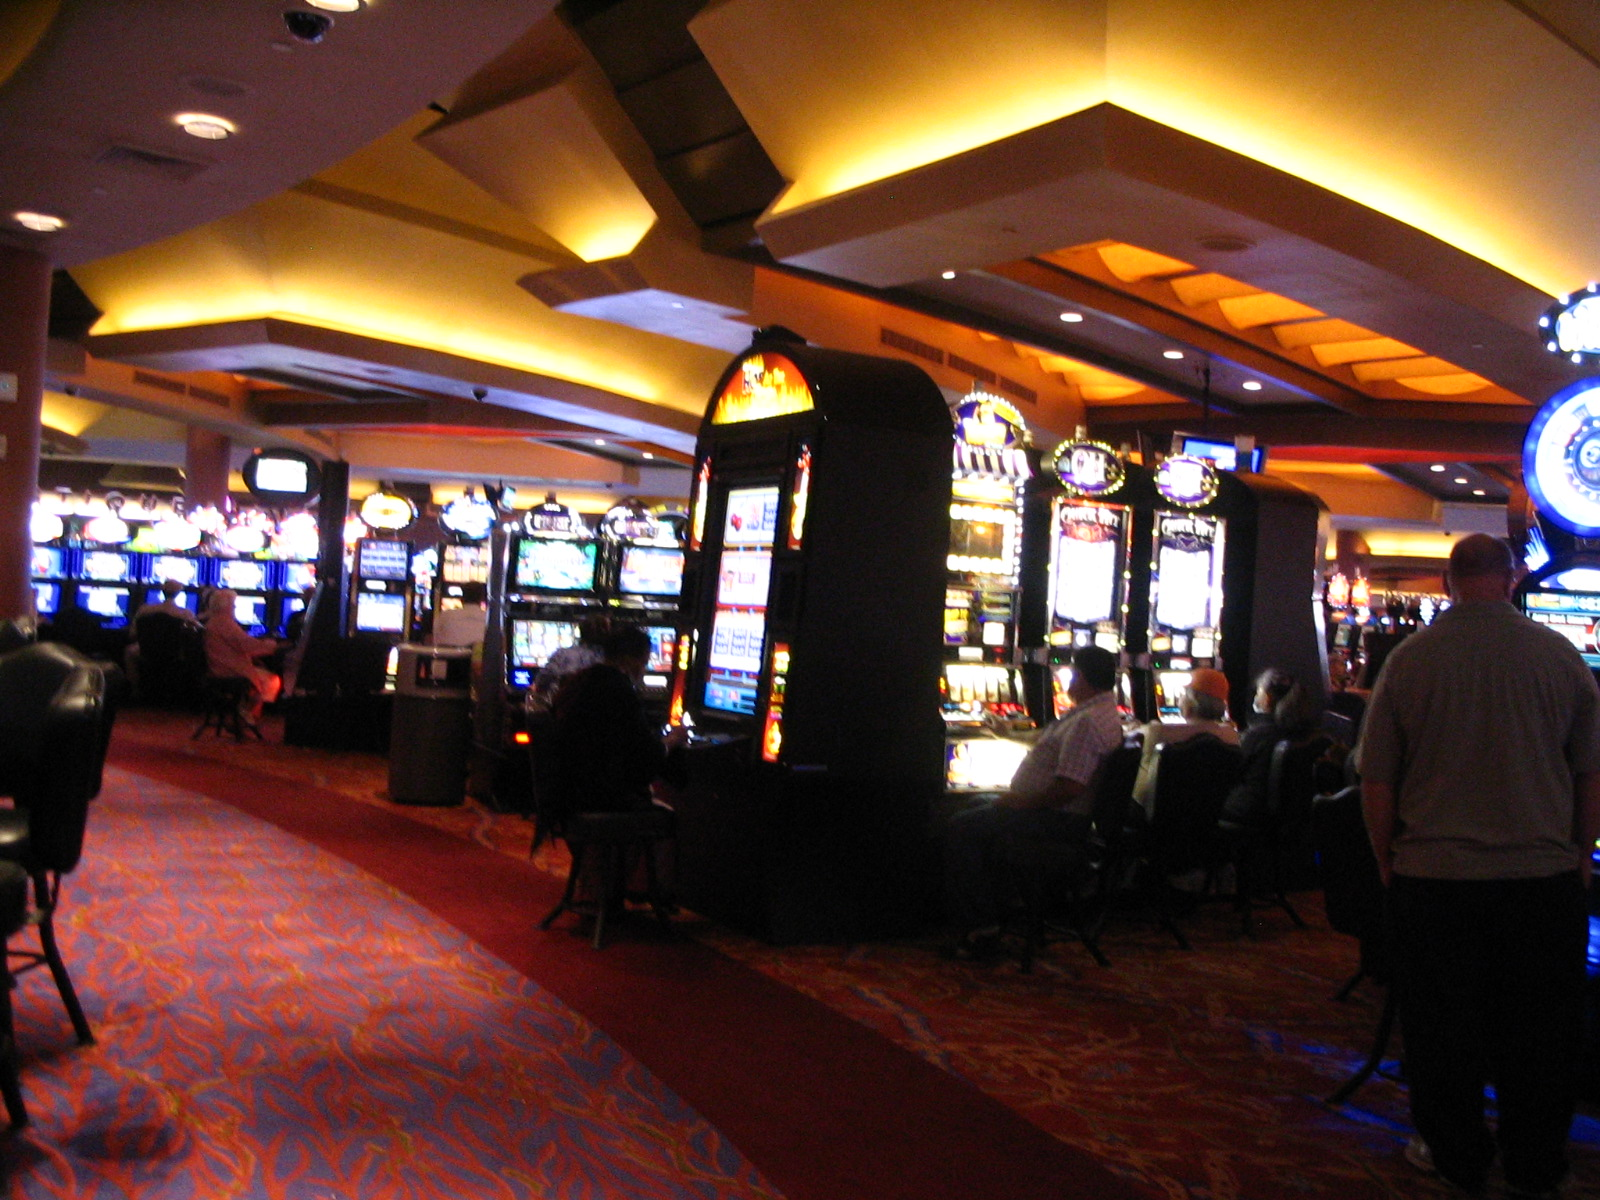 San bernardino casinos lodge casino